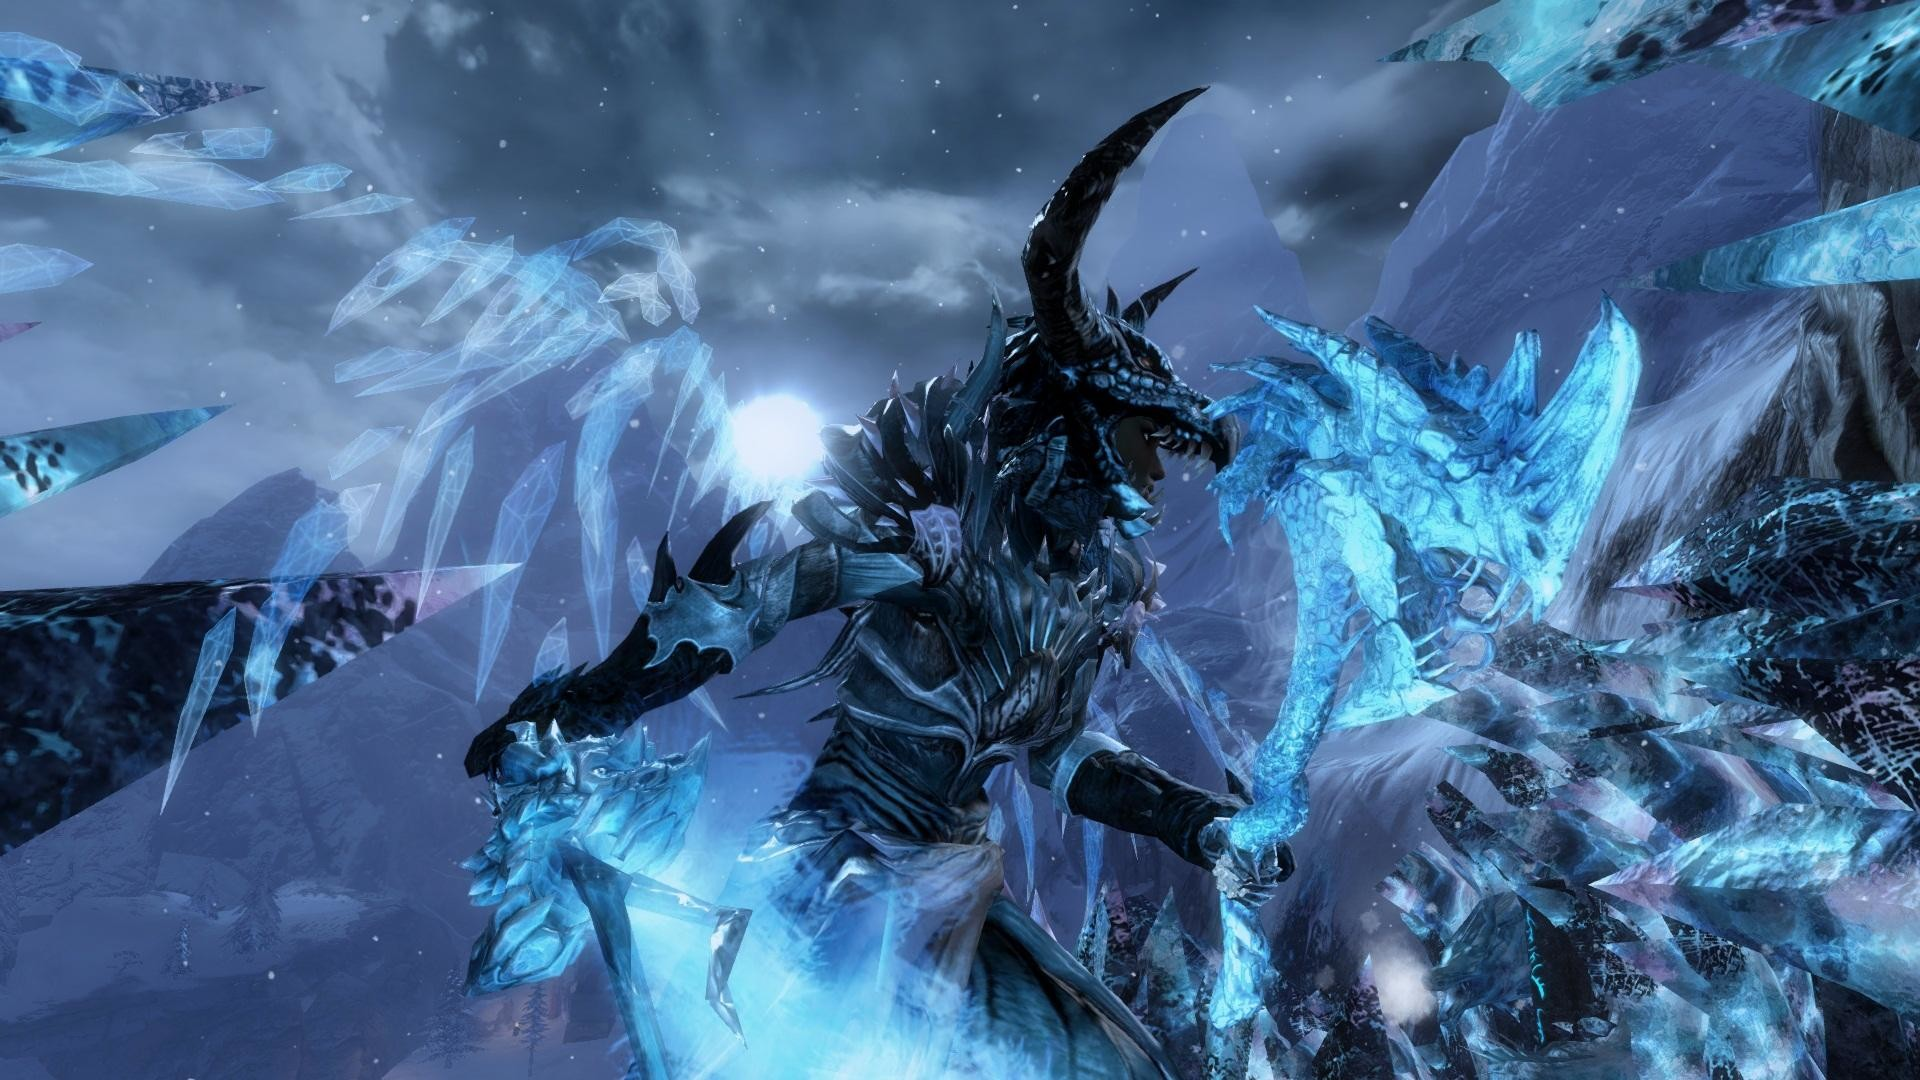 1920x1080 wallpaper.wiki-Ice-Dragon-Wallpaper-HD-PIC-WPE004885